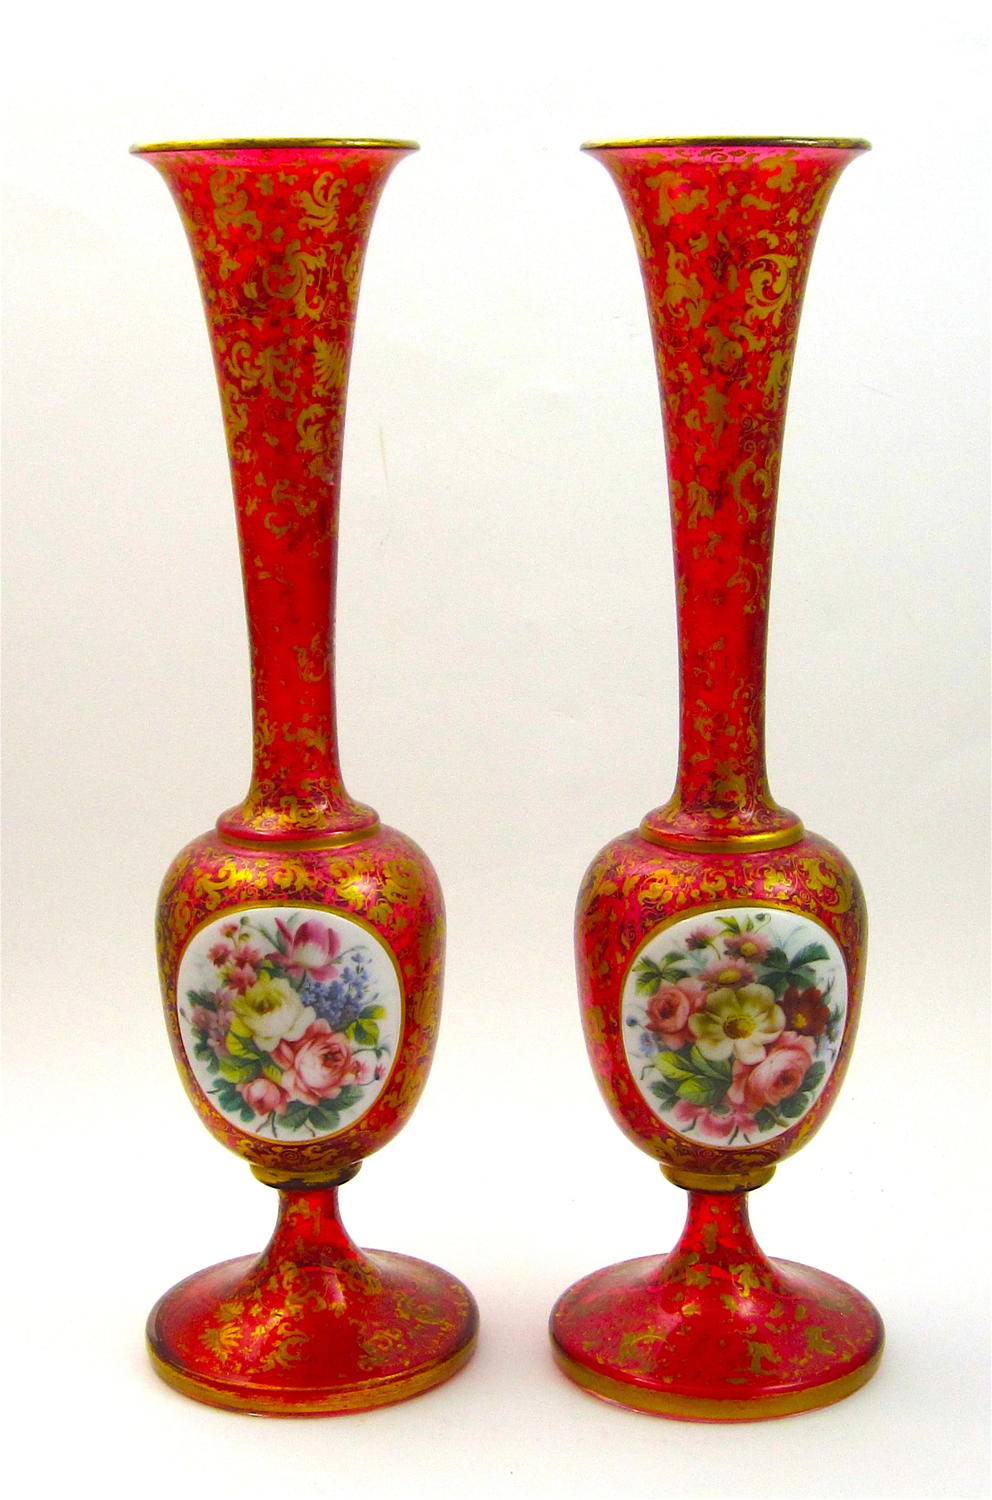 Stunning Pair of Tall Antique Bohemian Overlay Flower Vases